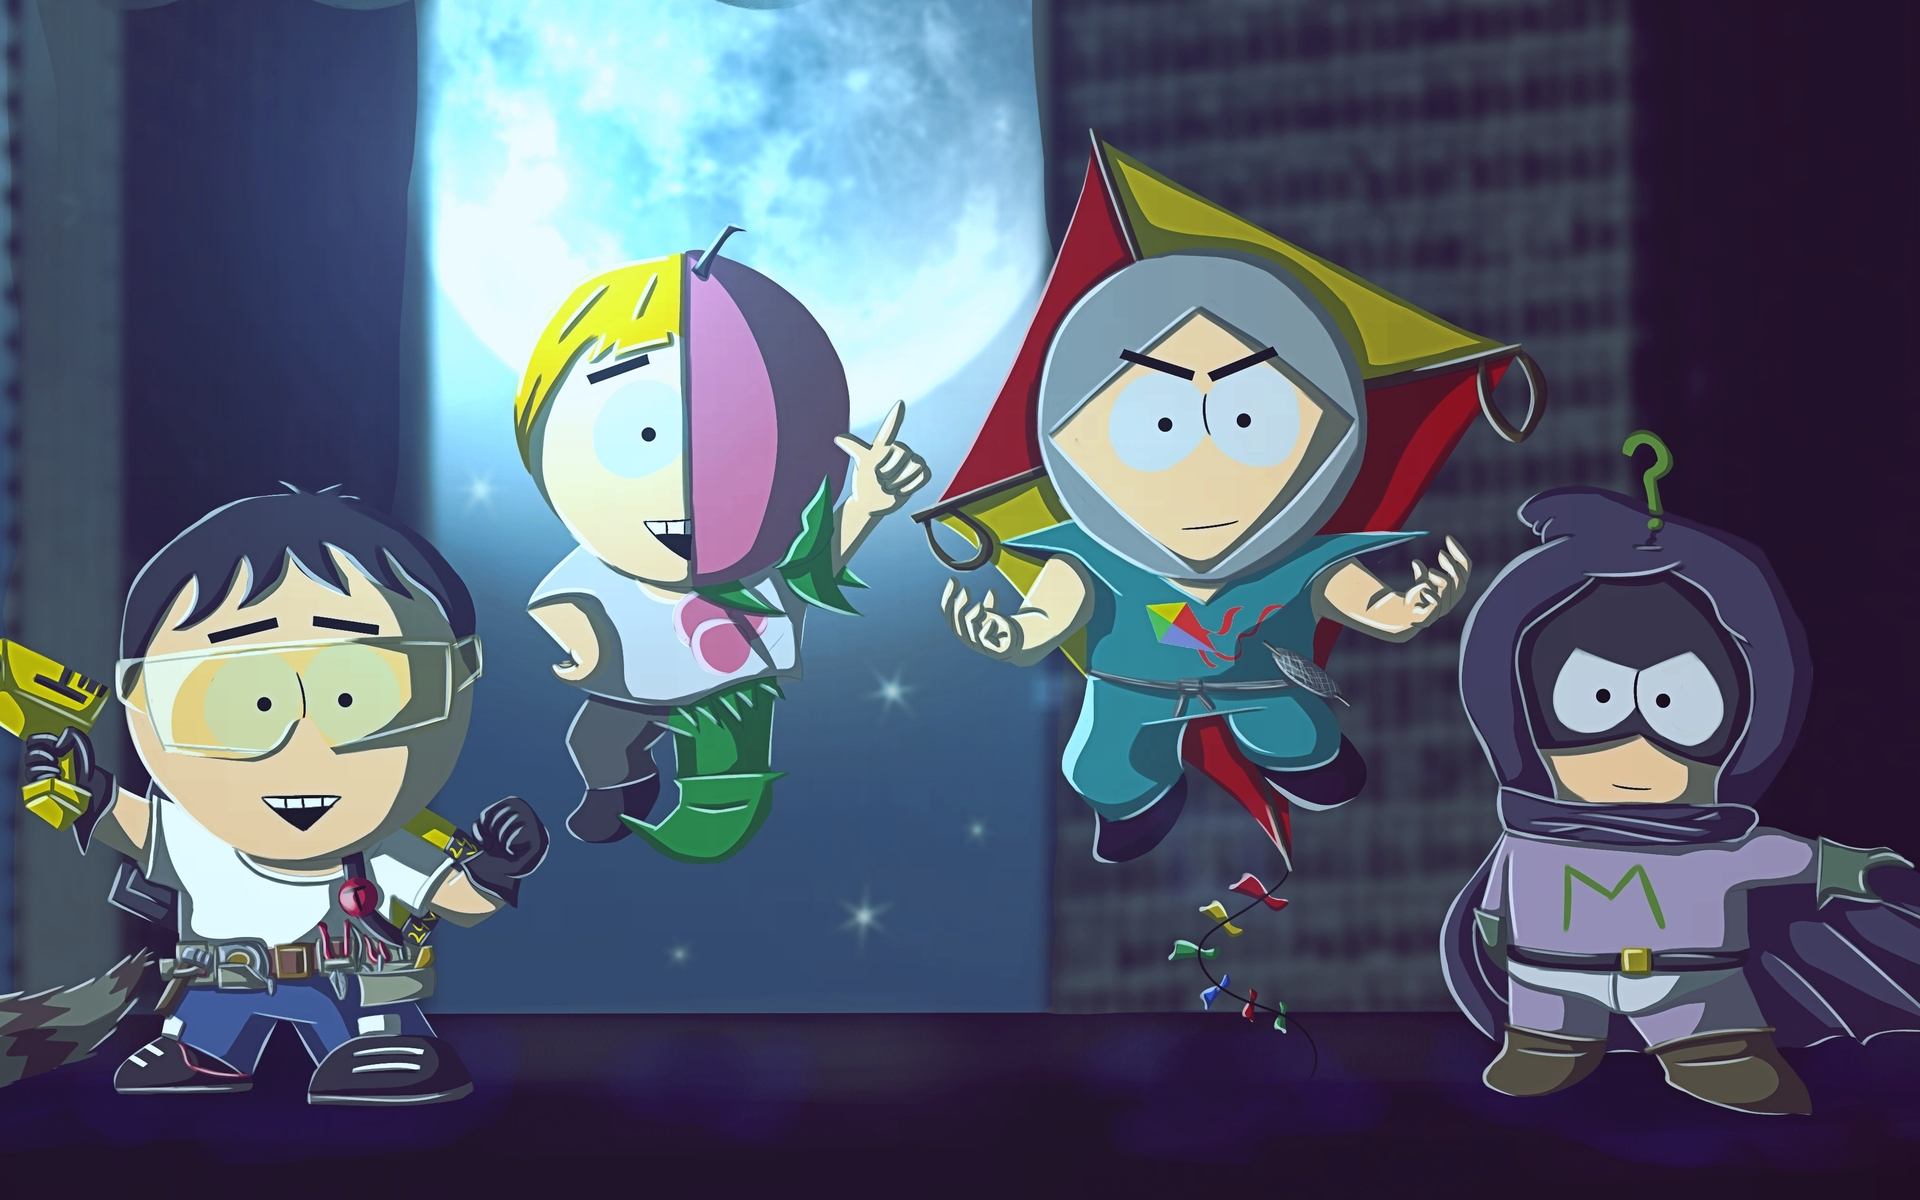 south-park-superheroes-fanart-5k-rz.jpg